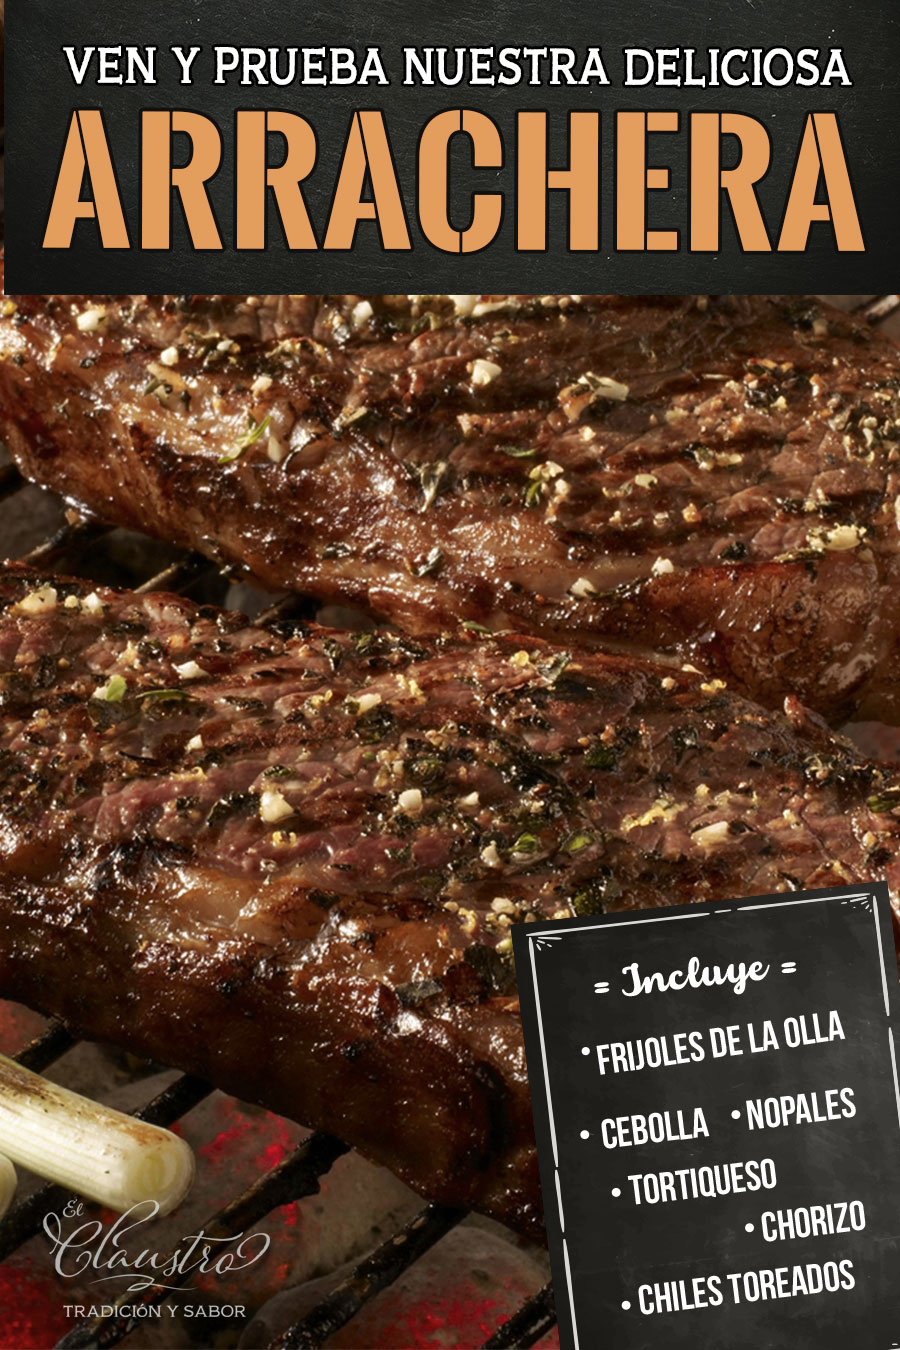 Arracheras estilo Claustro